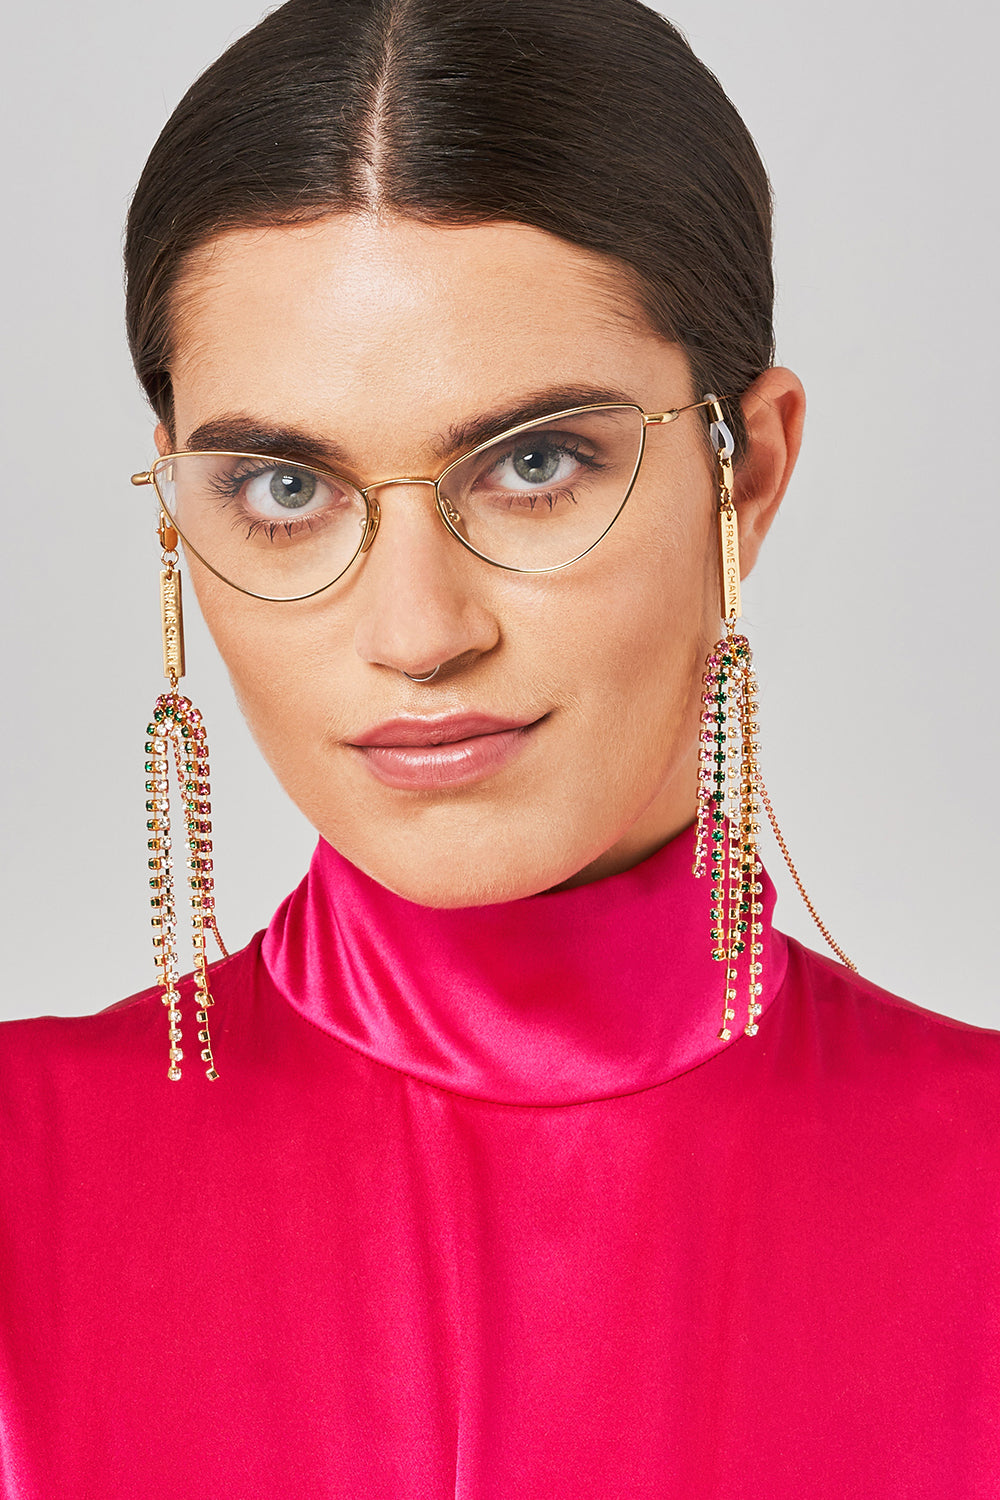 FRAME CHAIN | DOLLY WHITE, PINK & GREEN CRYSTAL in YELLOW GOLD | Glasses Chains | Eyewear Chains